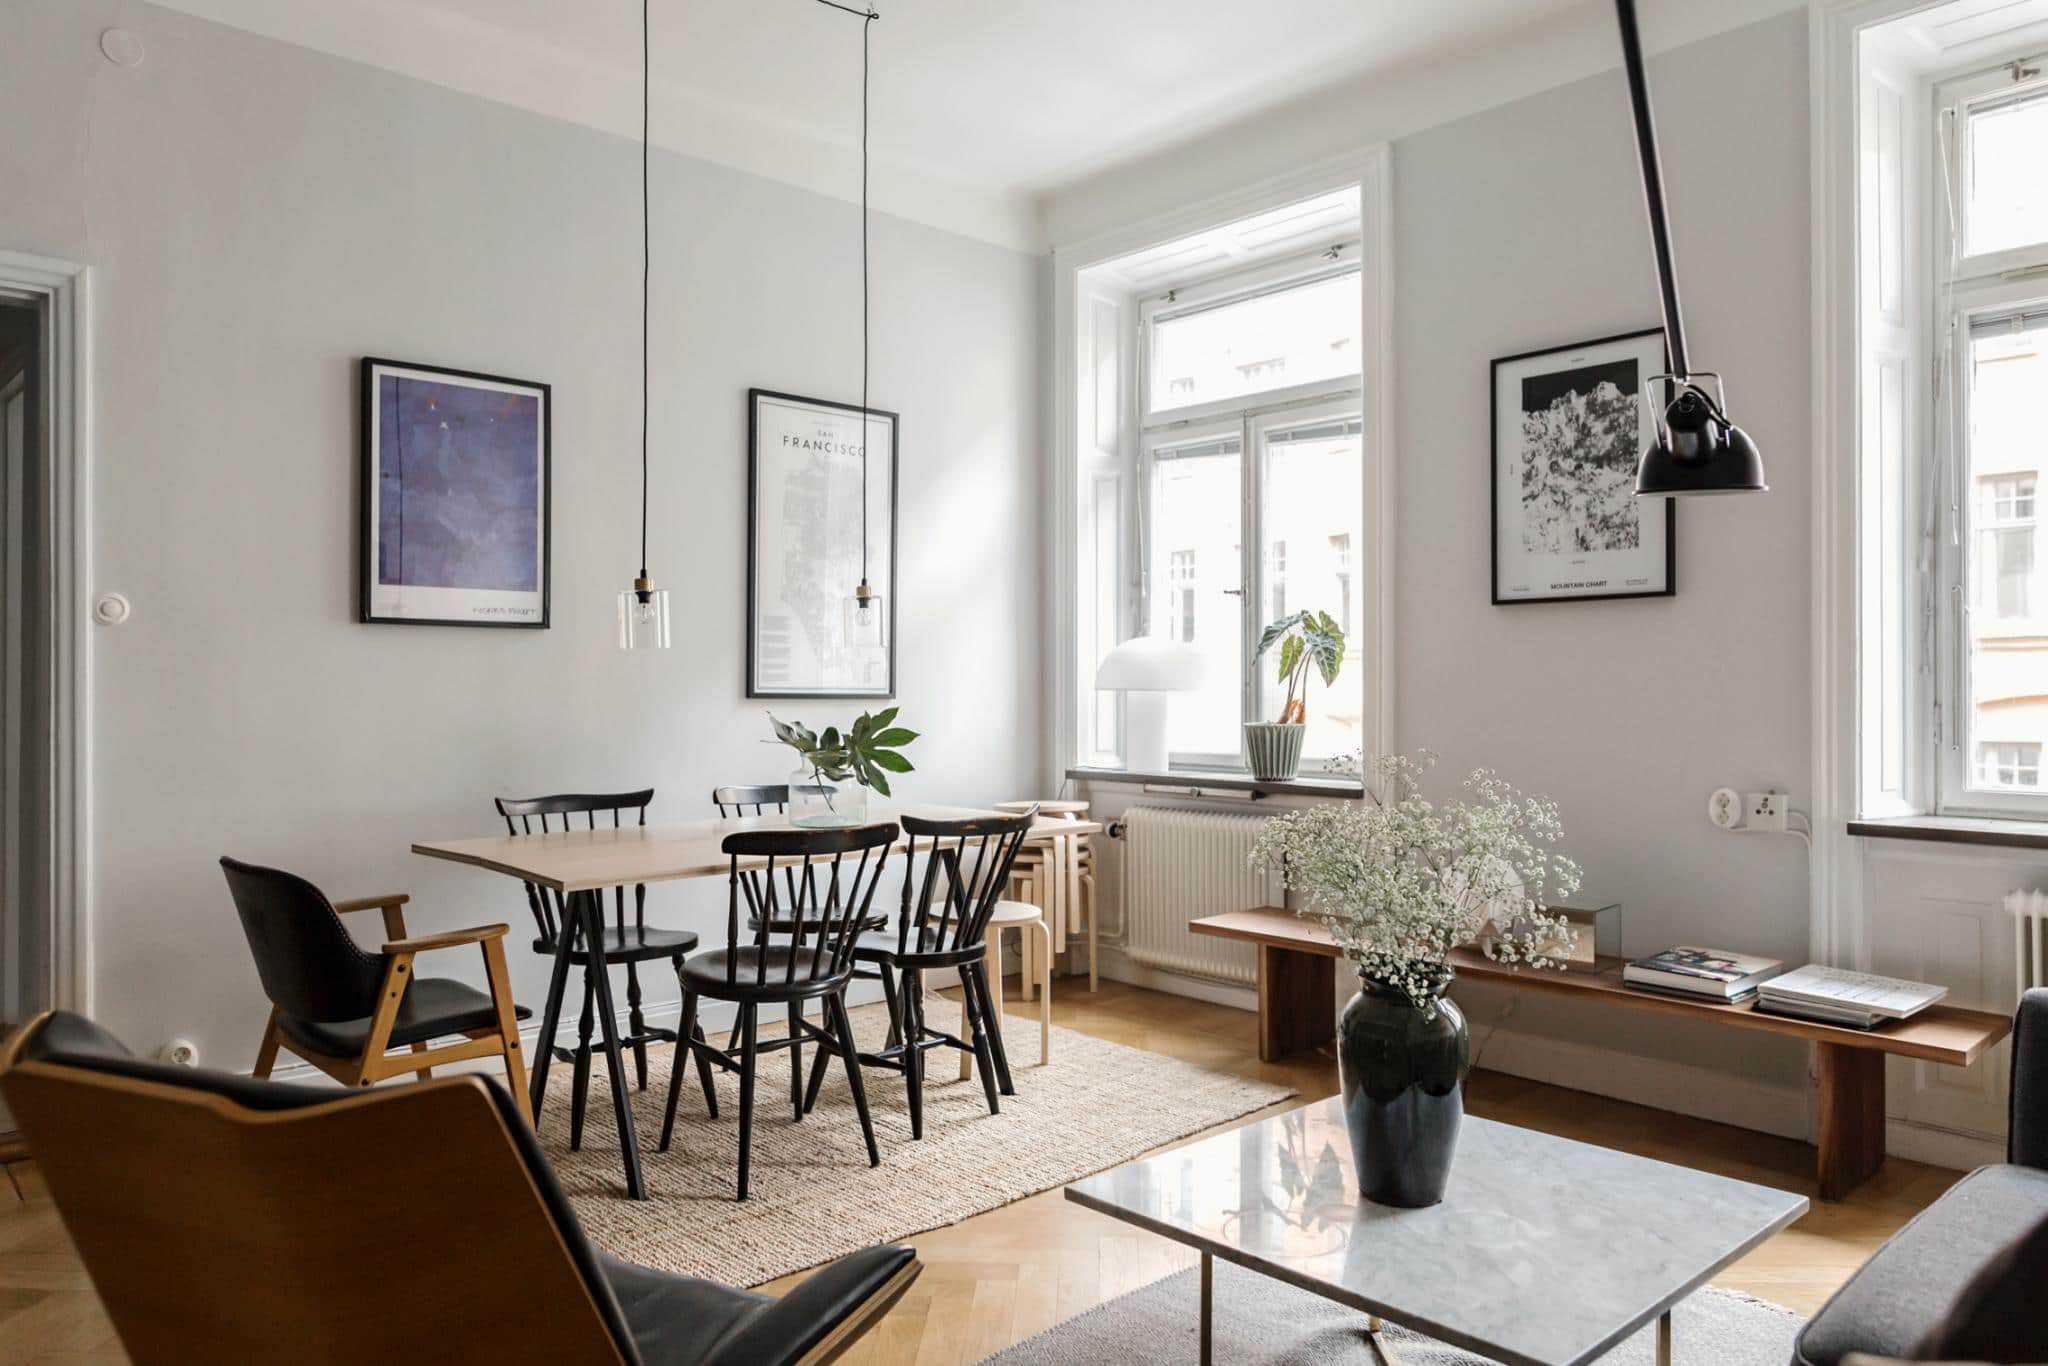 SMALL SPACE DECORATING IDEAS: A DREAMY SWEDISH APARTMENT IN STOCKHOLM. A  Scandinavian inspired living room with grey walls and big windows.